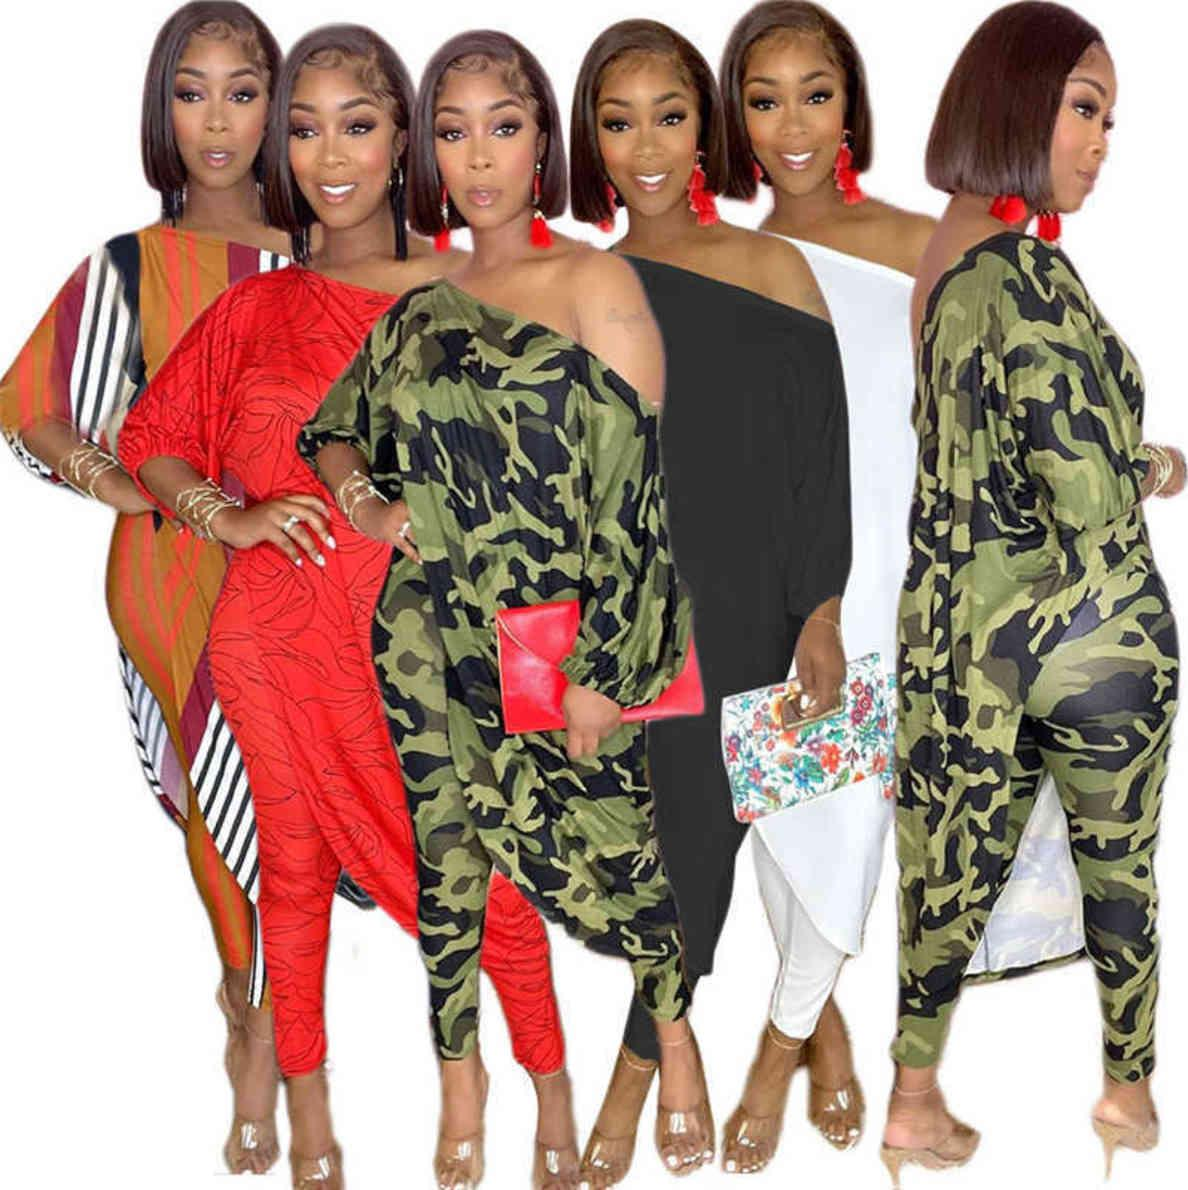 Women sportswear two piece set tracksuits plus size outfits long sleeve top trousers sweatsuit pullover tights legging suits S-4XL